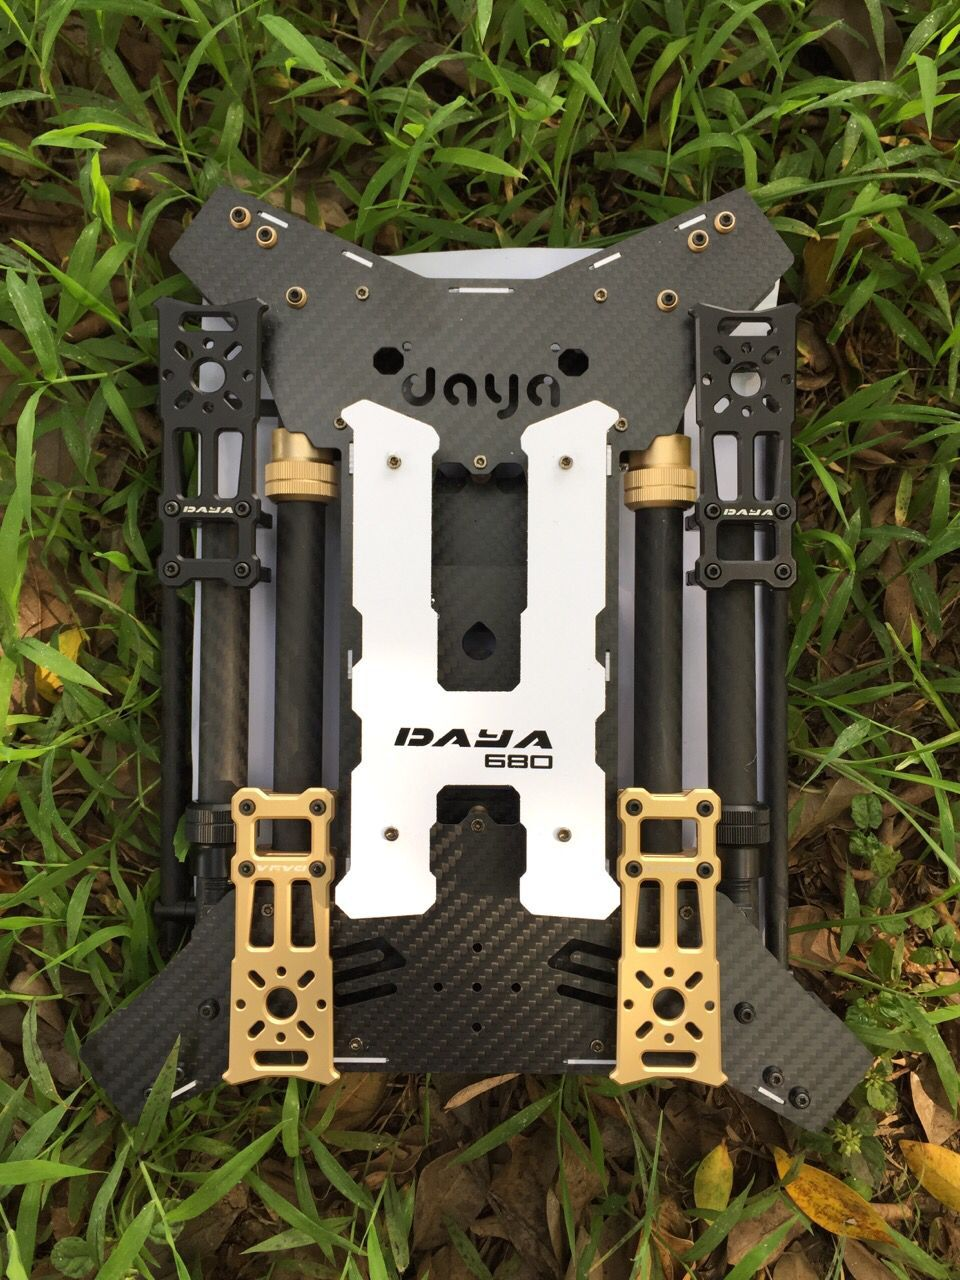 680 Daya 680 daya-680 Folding 4-Axis Carbon Fiber UAV H4 Quadcopter Frame w/Landing Gear for FPV atg tt x4 12 reptile 4 axis glass carbon folding frame kit with landing gear black